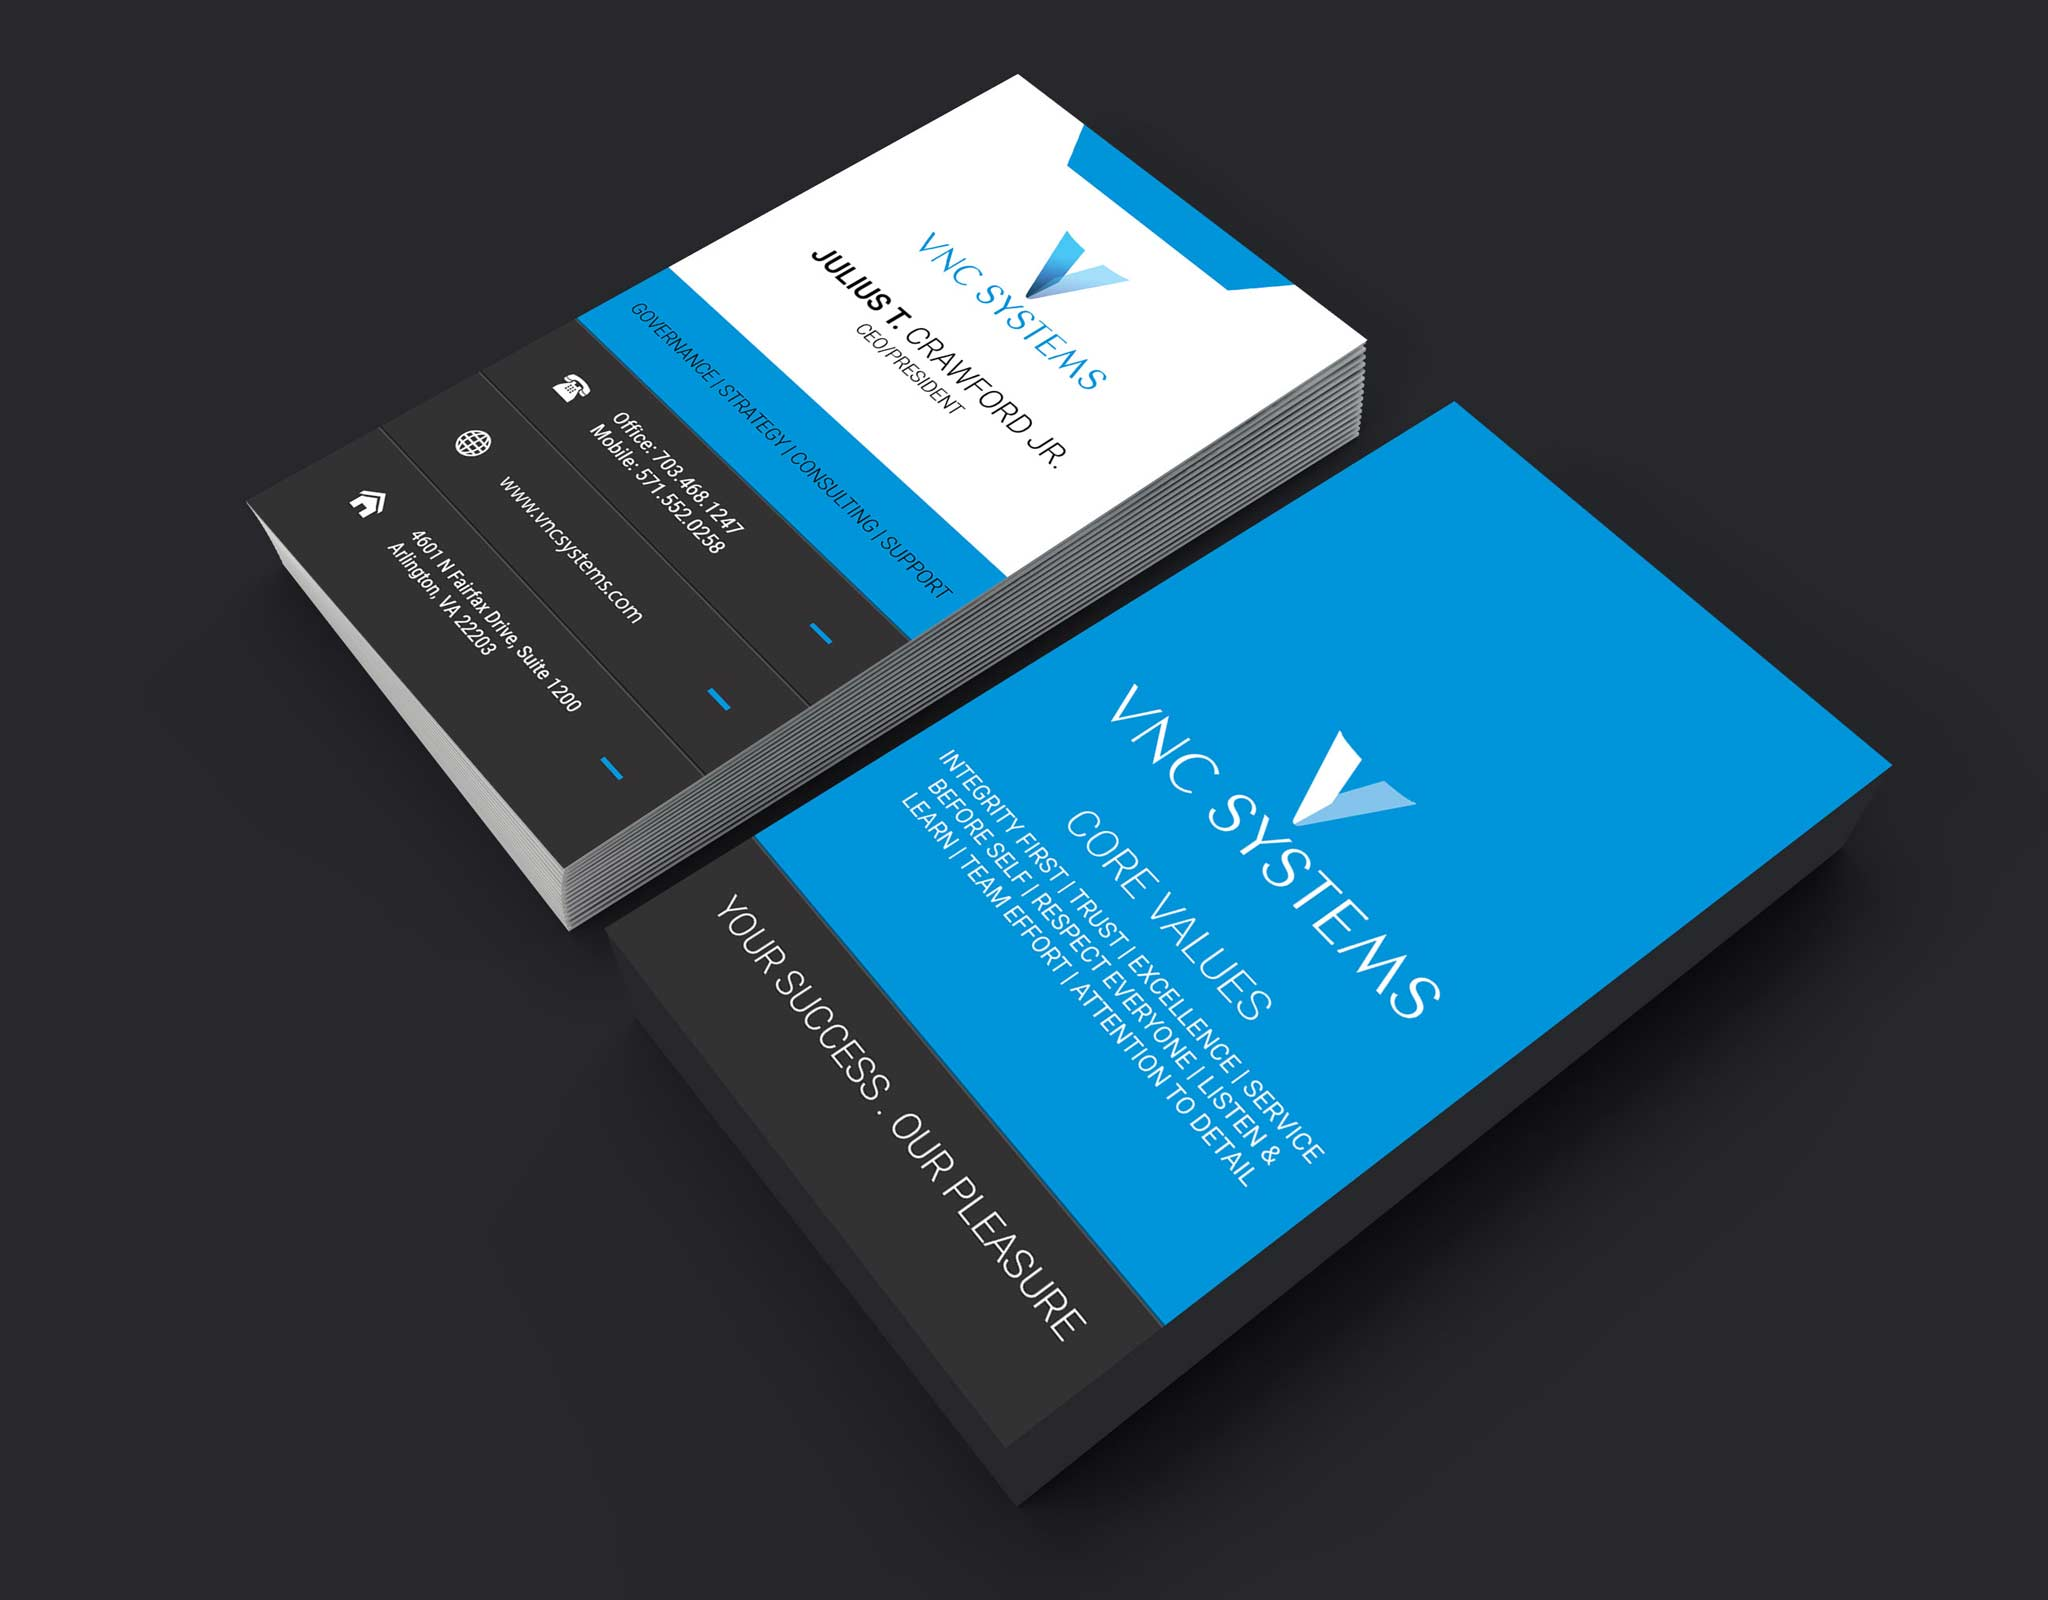 Bespoke Business Cards - Designed & Printed On A Unique Suede Finish